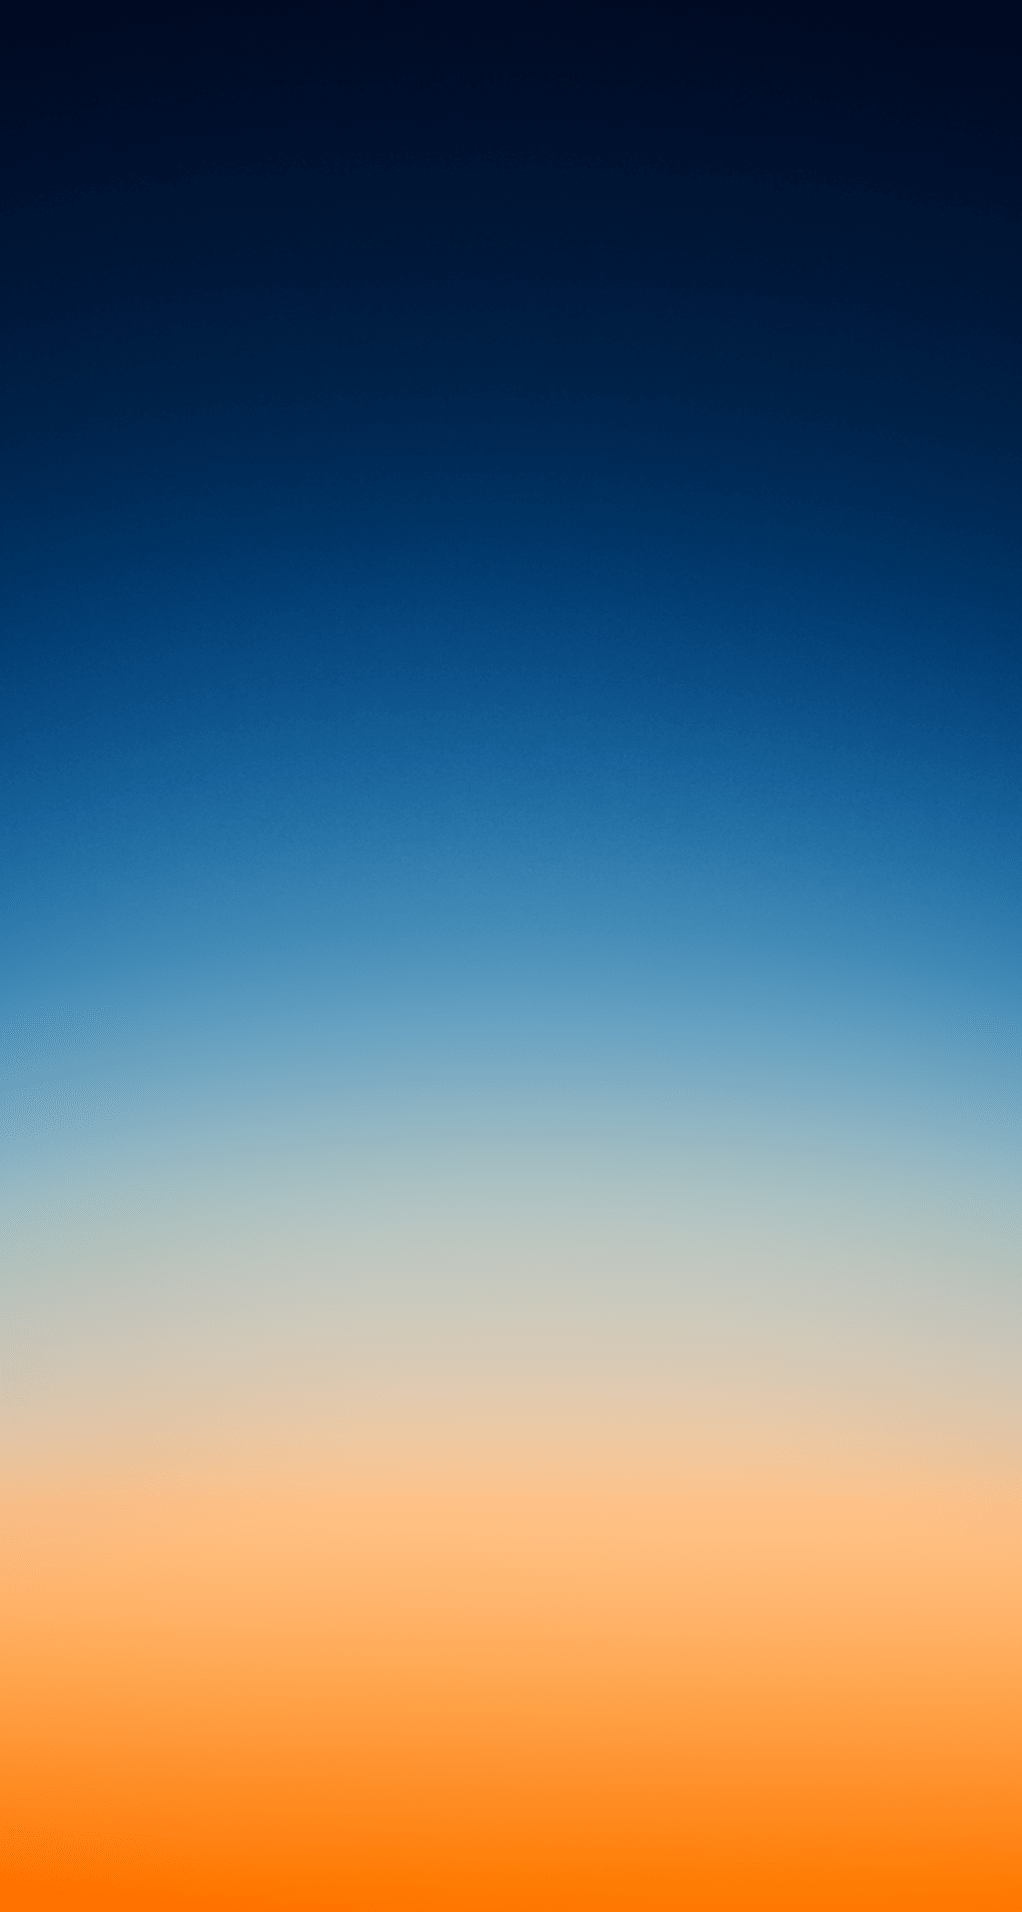 900 Iphone Wallpapers That Will Freshen Up Your Homescreen Ios 7 Wallpaper Iphone Homescreen Wallpaper Blue Wallpaper Iphone